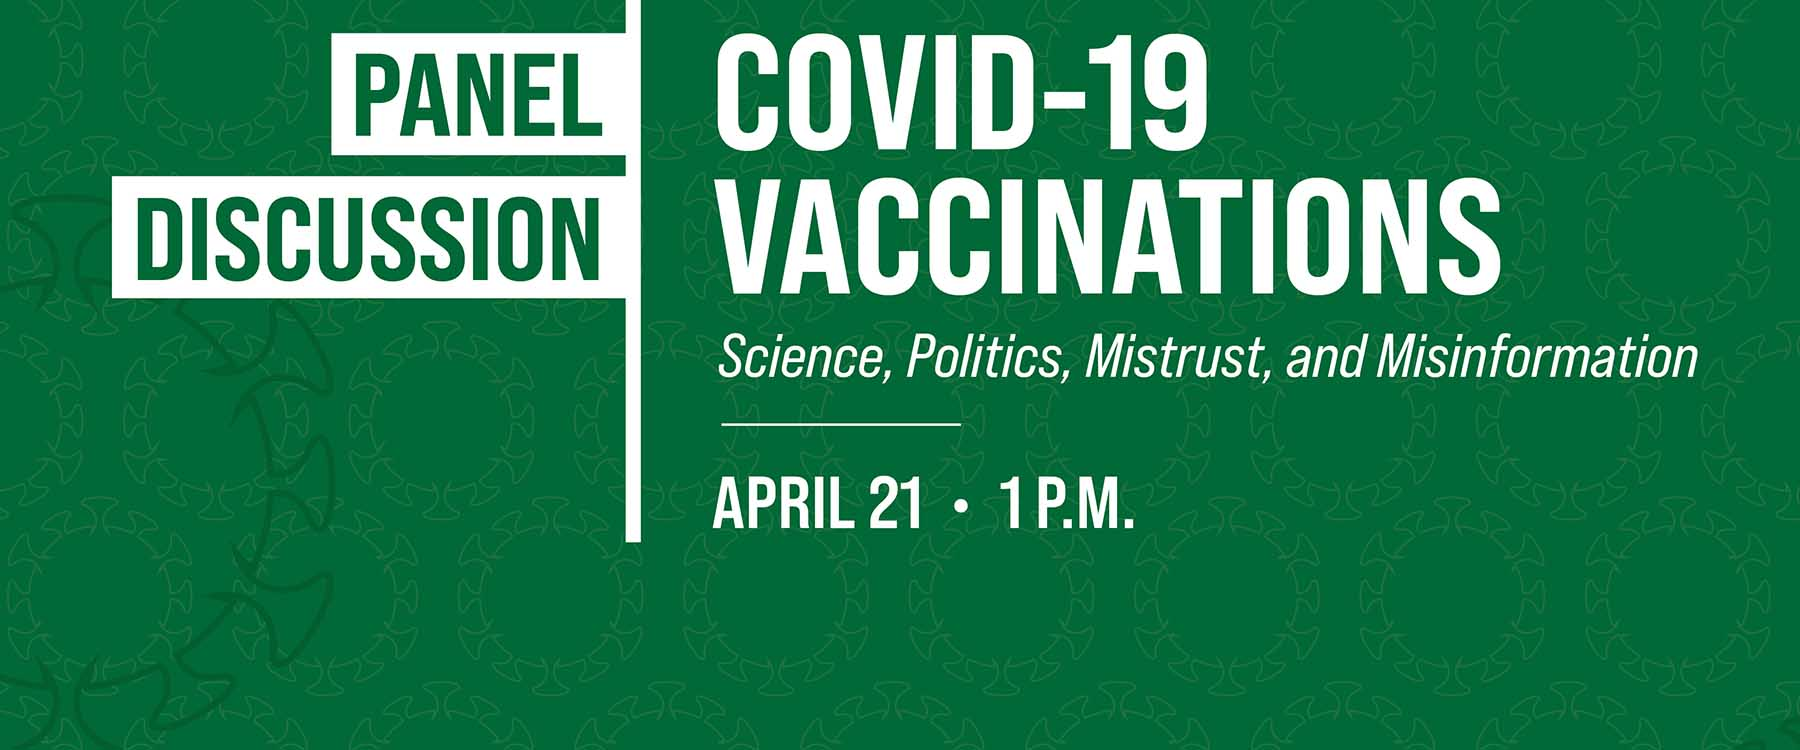 Panel discussion to focus on COVID-19 vaccines